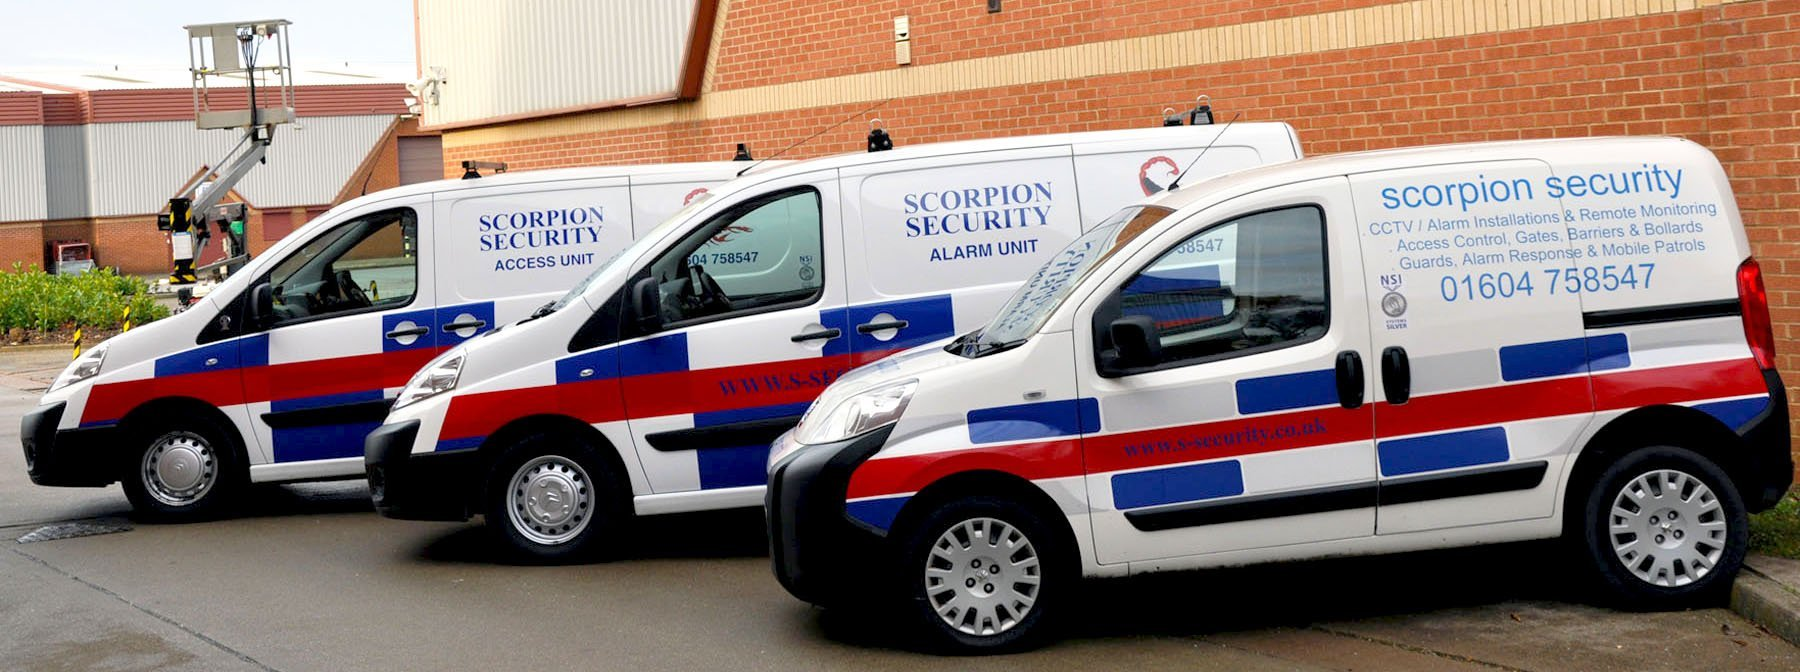 Scorpions security vehicle fleet